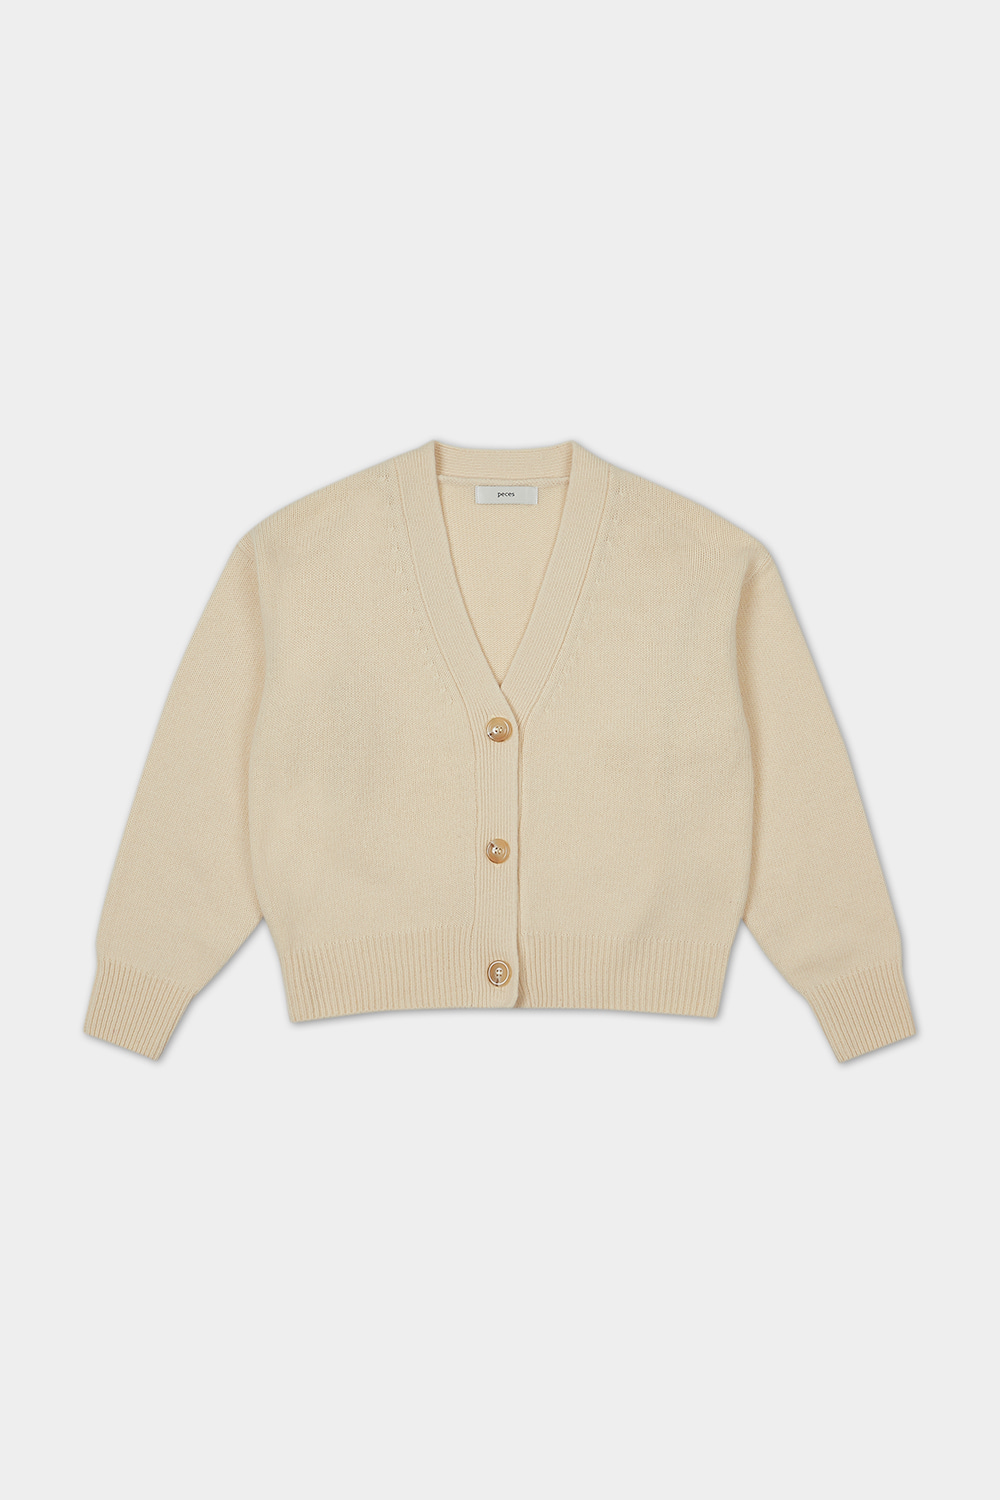 20FW CASHMERE BLENDED CARDIGAN (MARGARINE) - 3COLOR